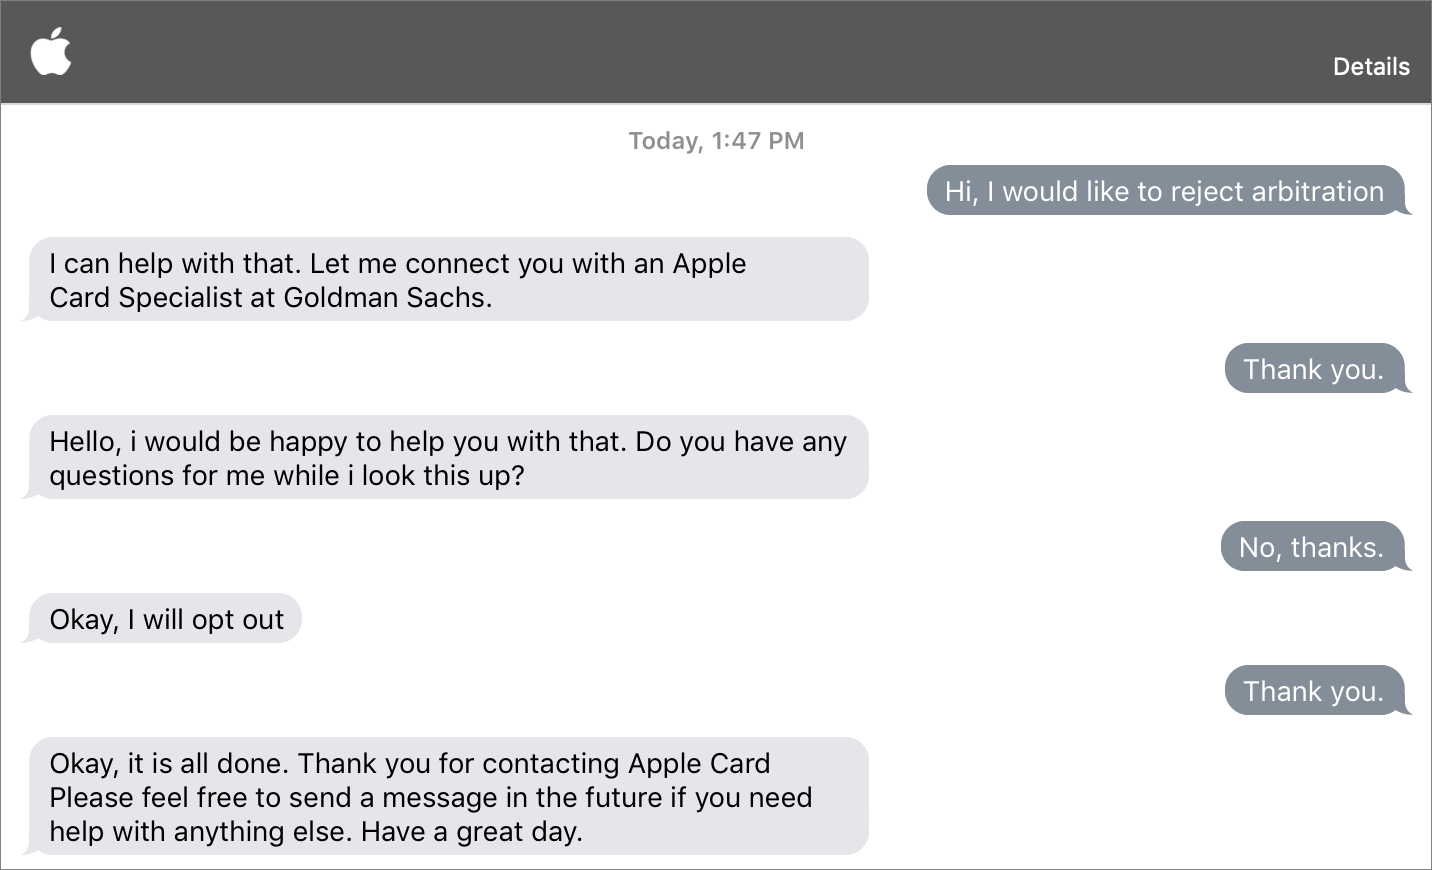 Josh's conversation with Apple Support for opting out of arbitration.